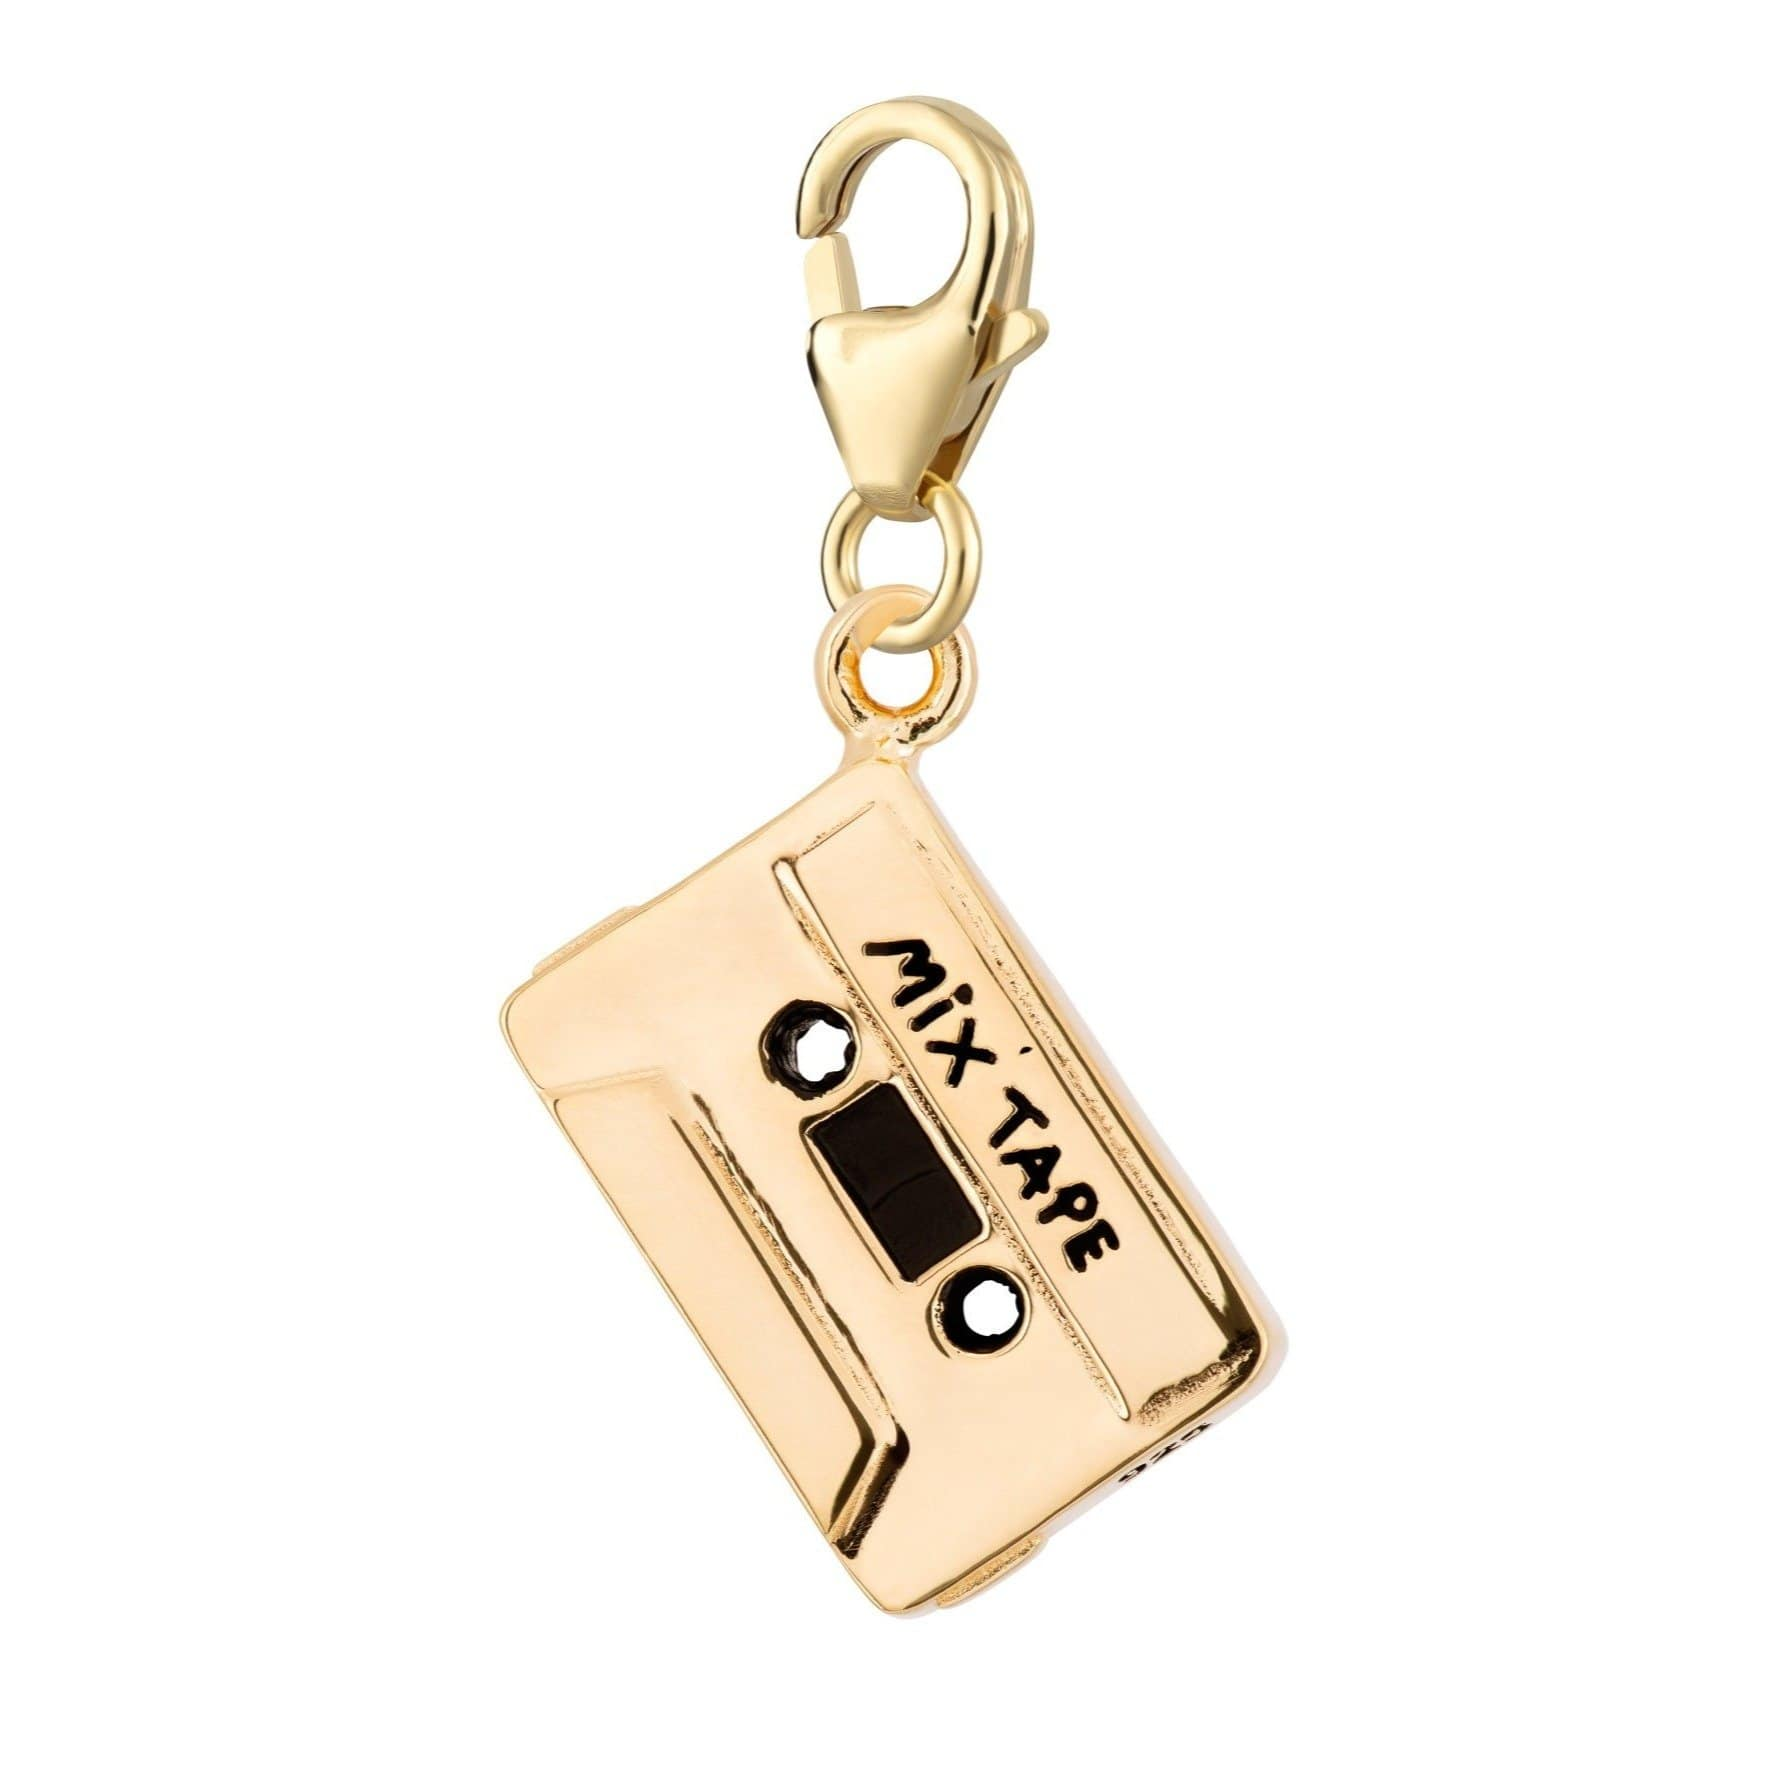 Gold Plated Cassette Tape Charm